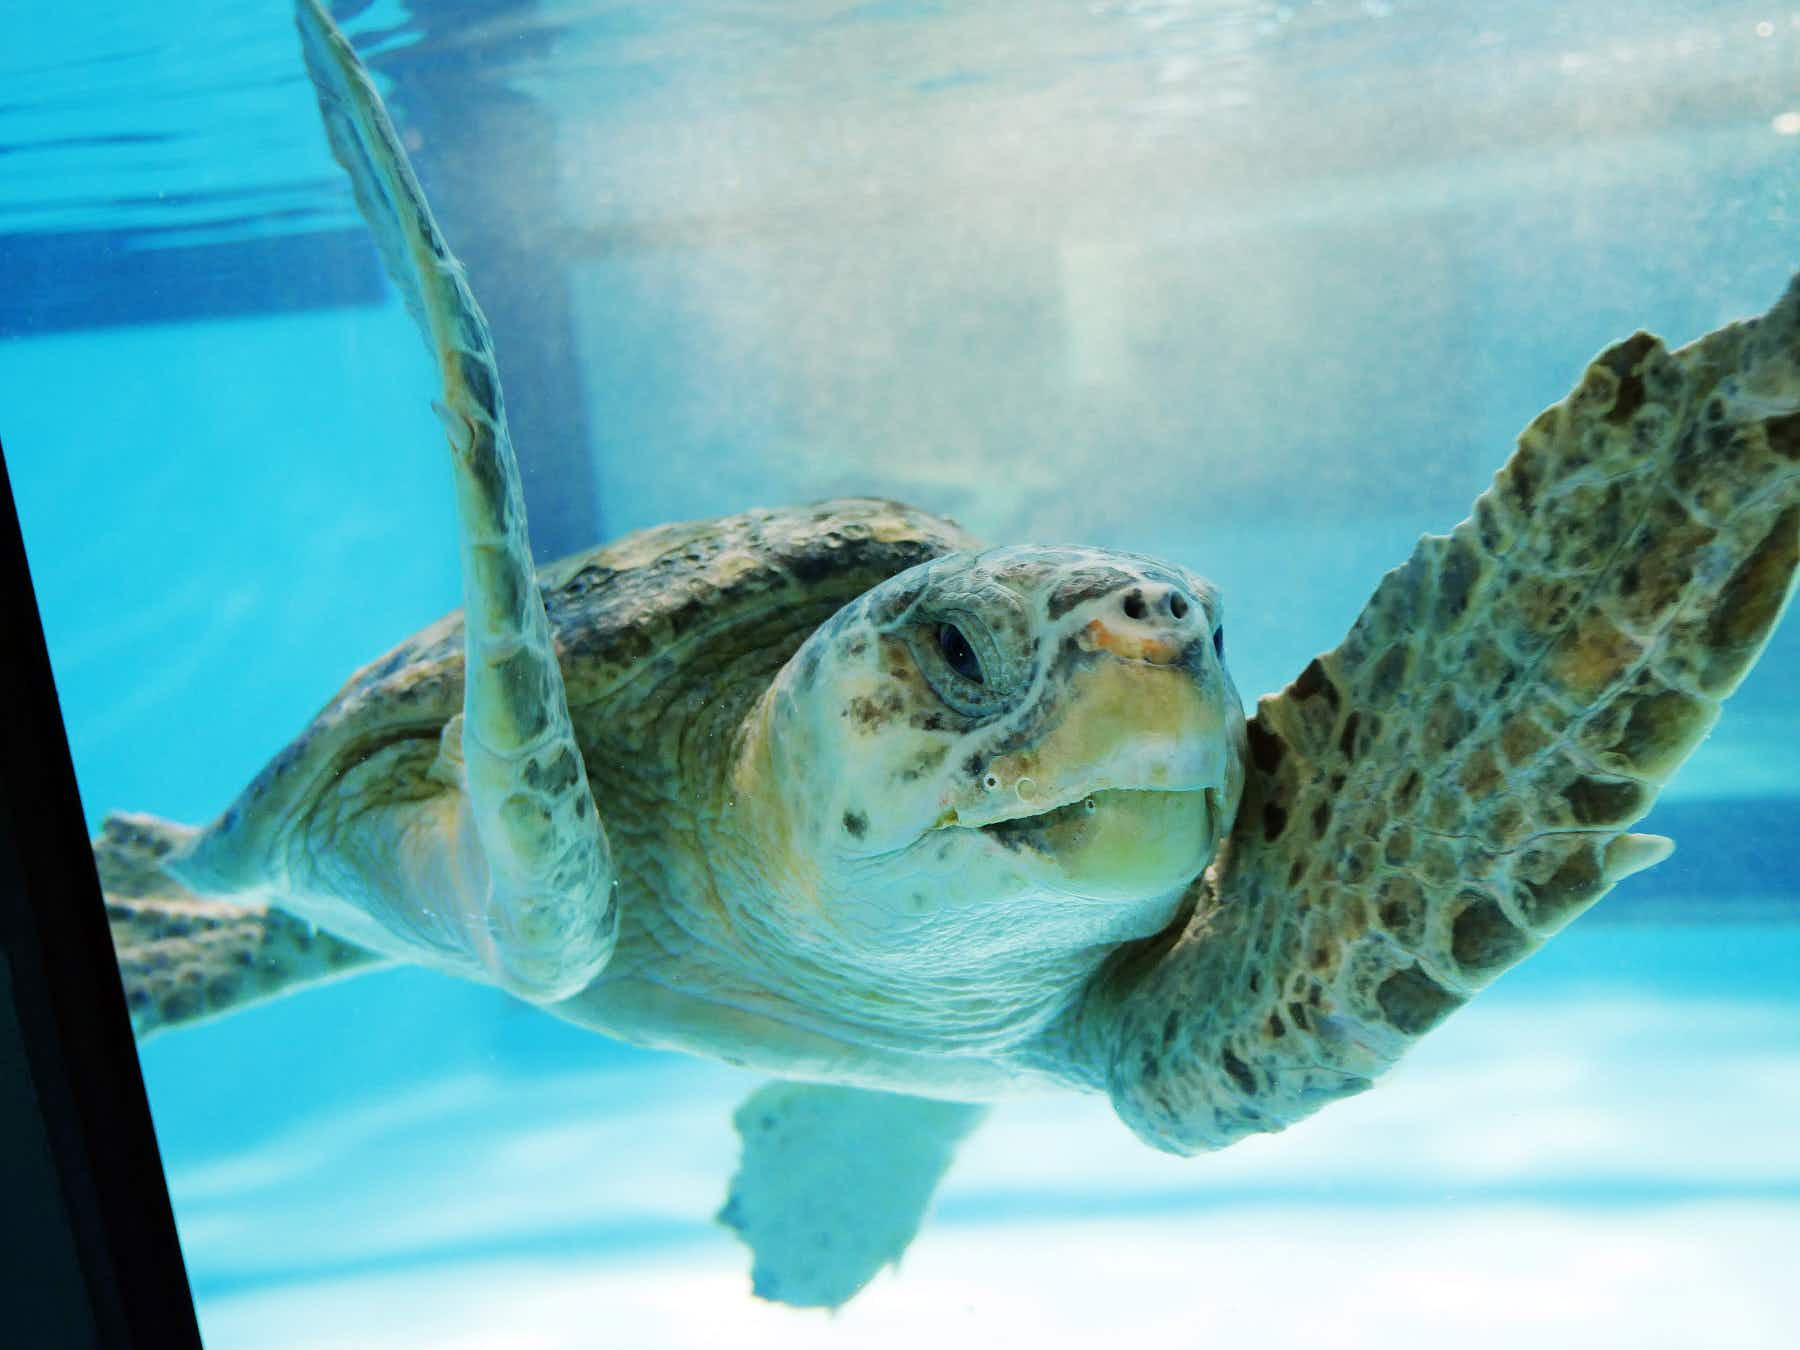 Get up close and personal with endangered sea turtles at this South Carolina rescue centre